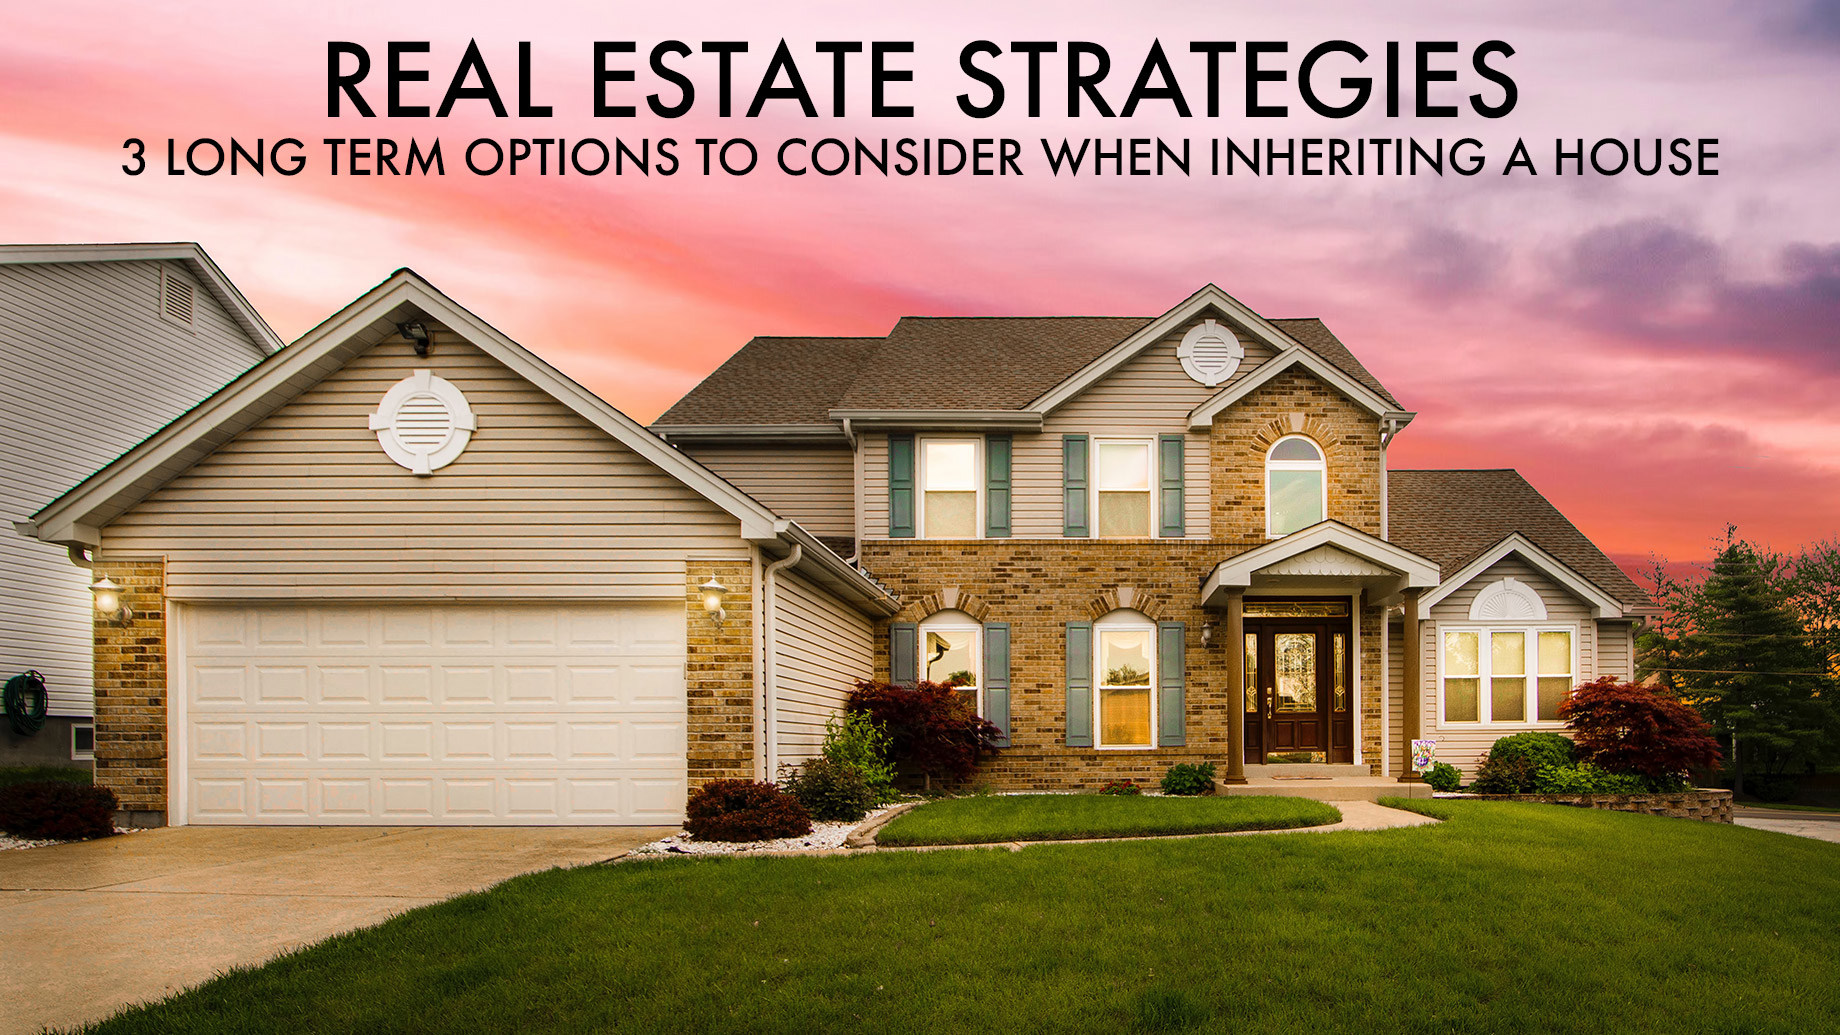 Real Estate Strategies - 3 Long Term Options to Consider When Inheriting a House